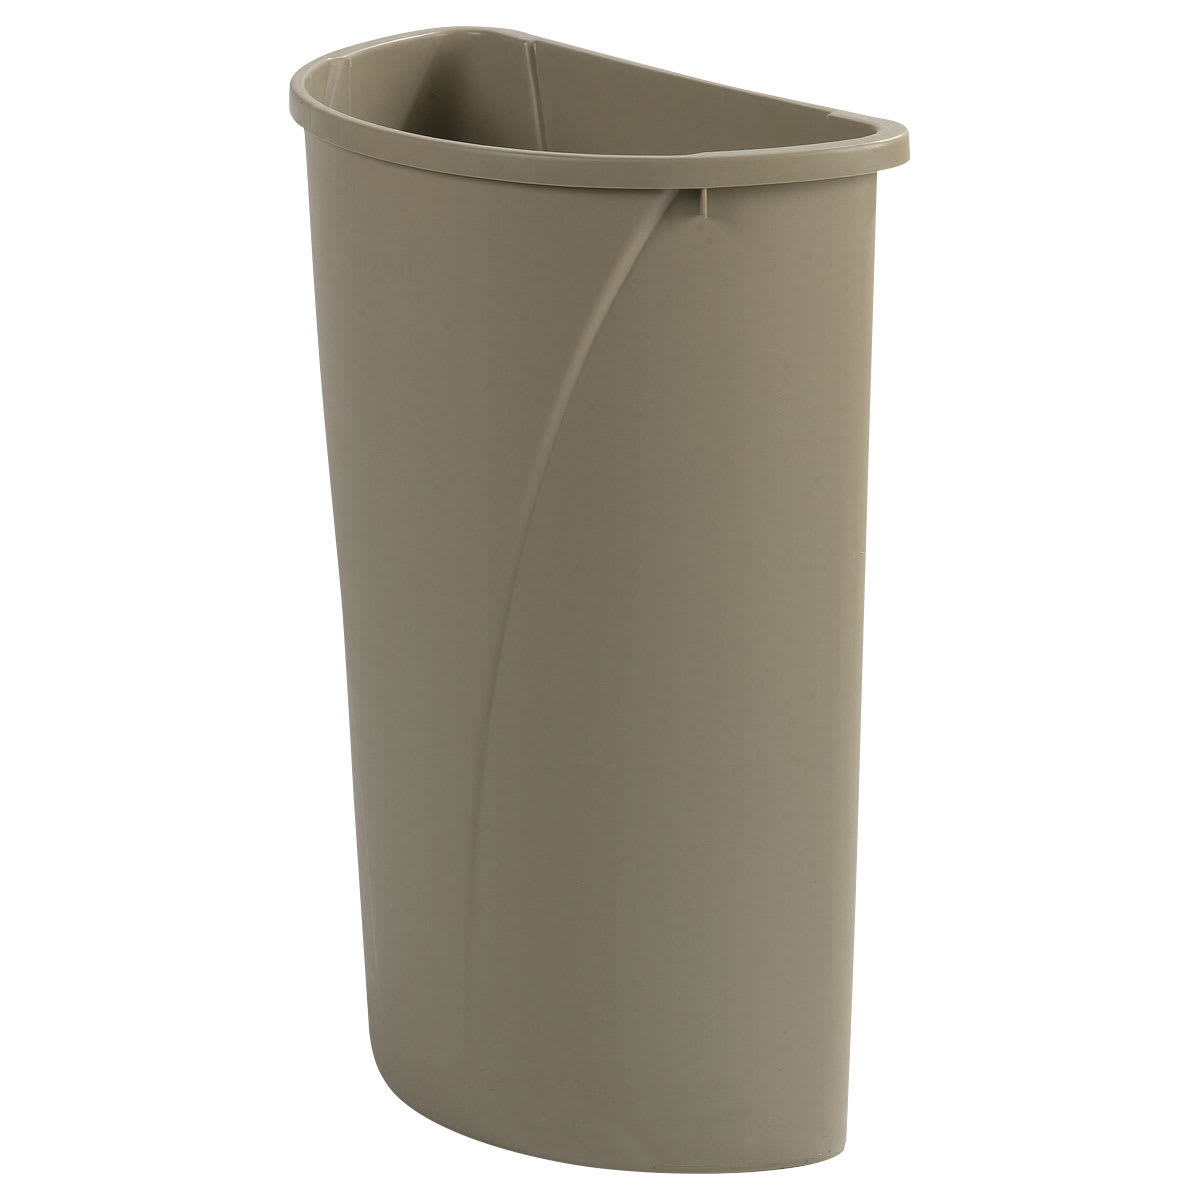 Carlisle 34302106 21 gallon Commercial Trash Can - Plastic, Half Round, Built-in Handles